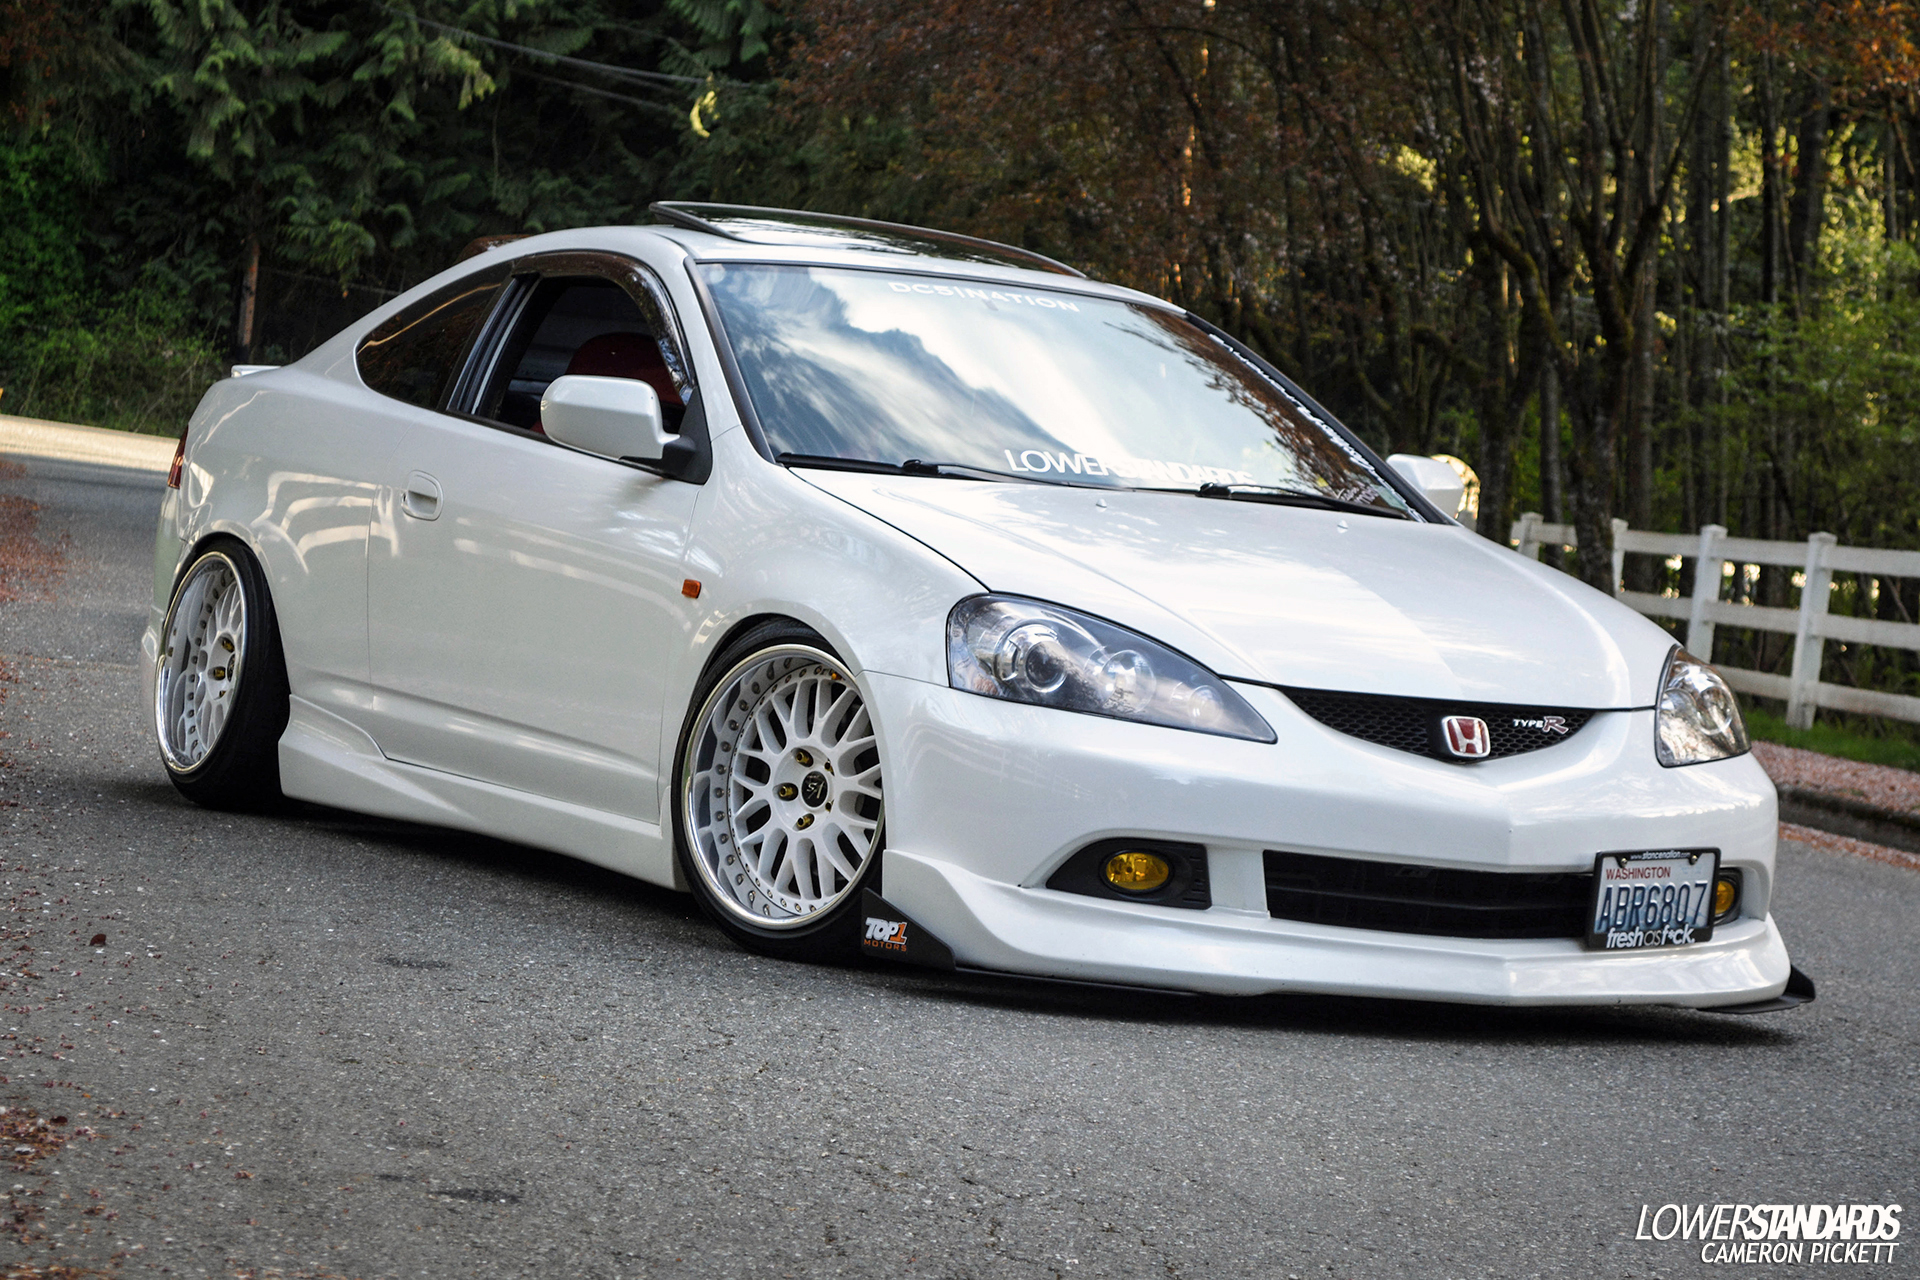 Mbn Dillon S Rsx Type S Lower Standardslower Standards